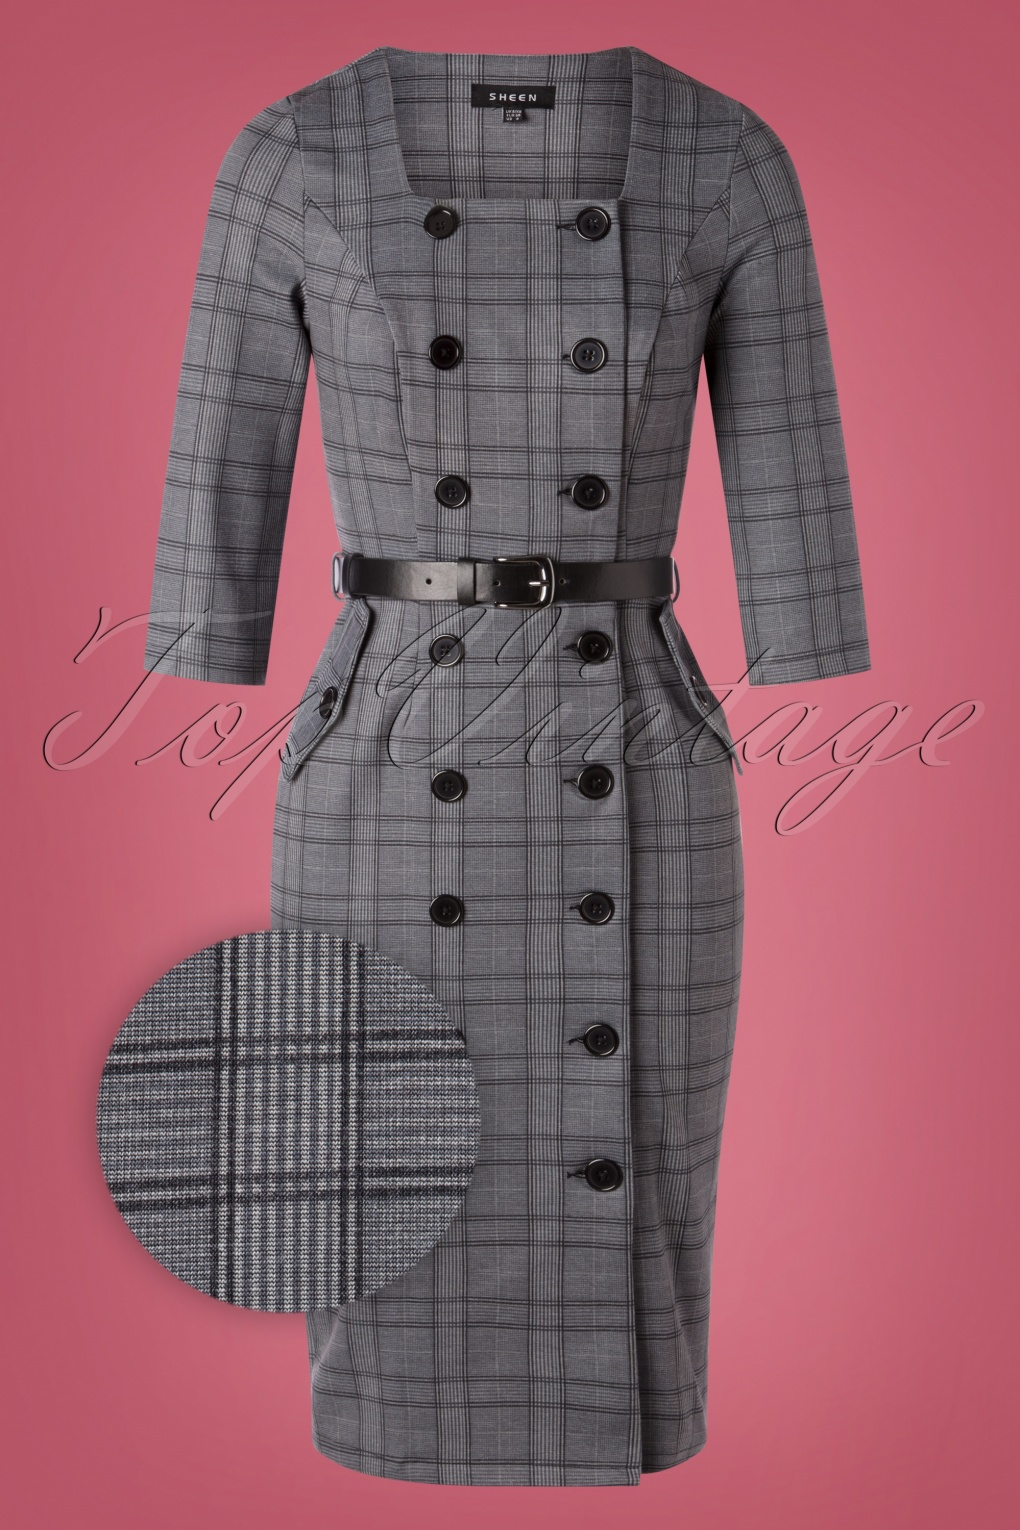 Pin Up Dresses | Pinup Clothing & Fashion 50s Jasmine Check Pencil Dress in Grey £64.49 AT vintagedancer.com